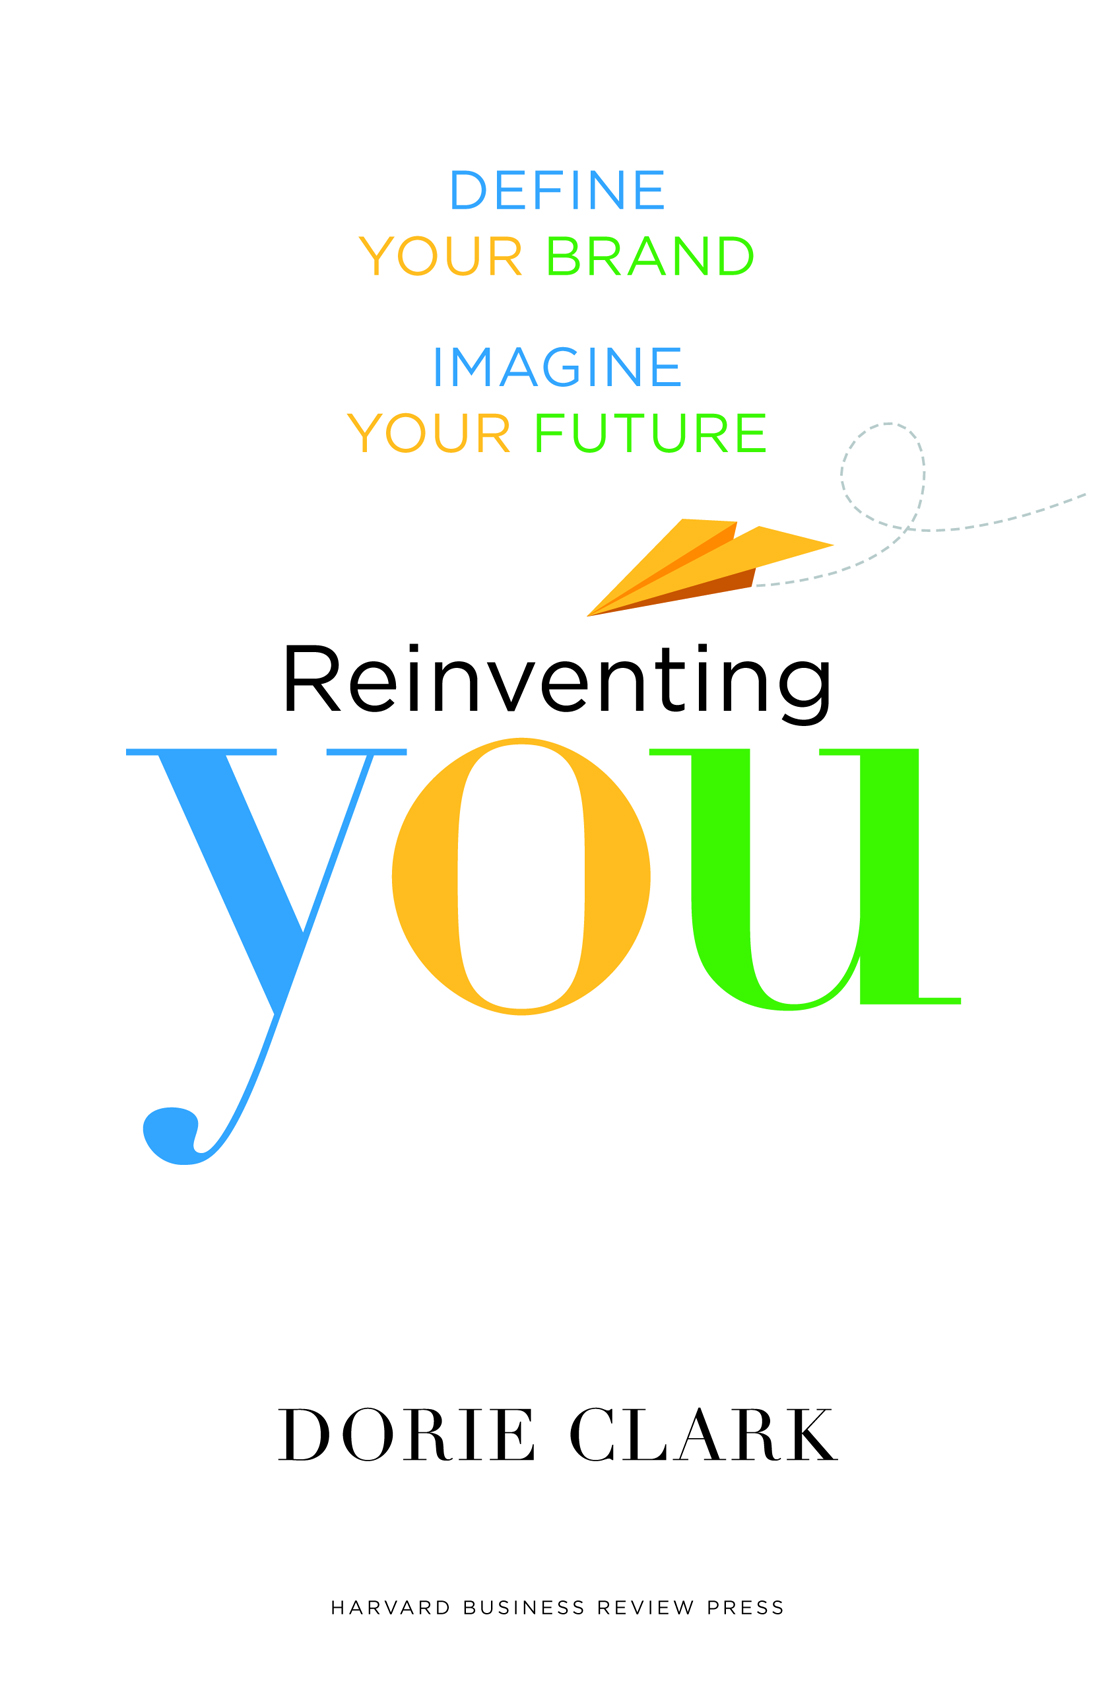 REINVENTING YOUR DORIE CLARK EBOOK